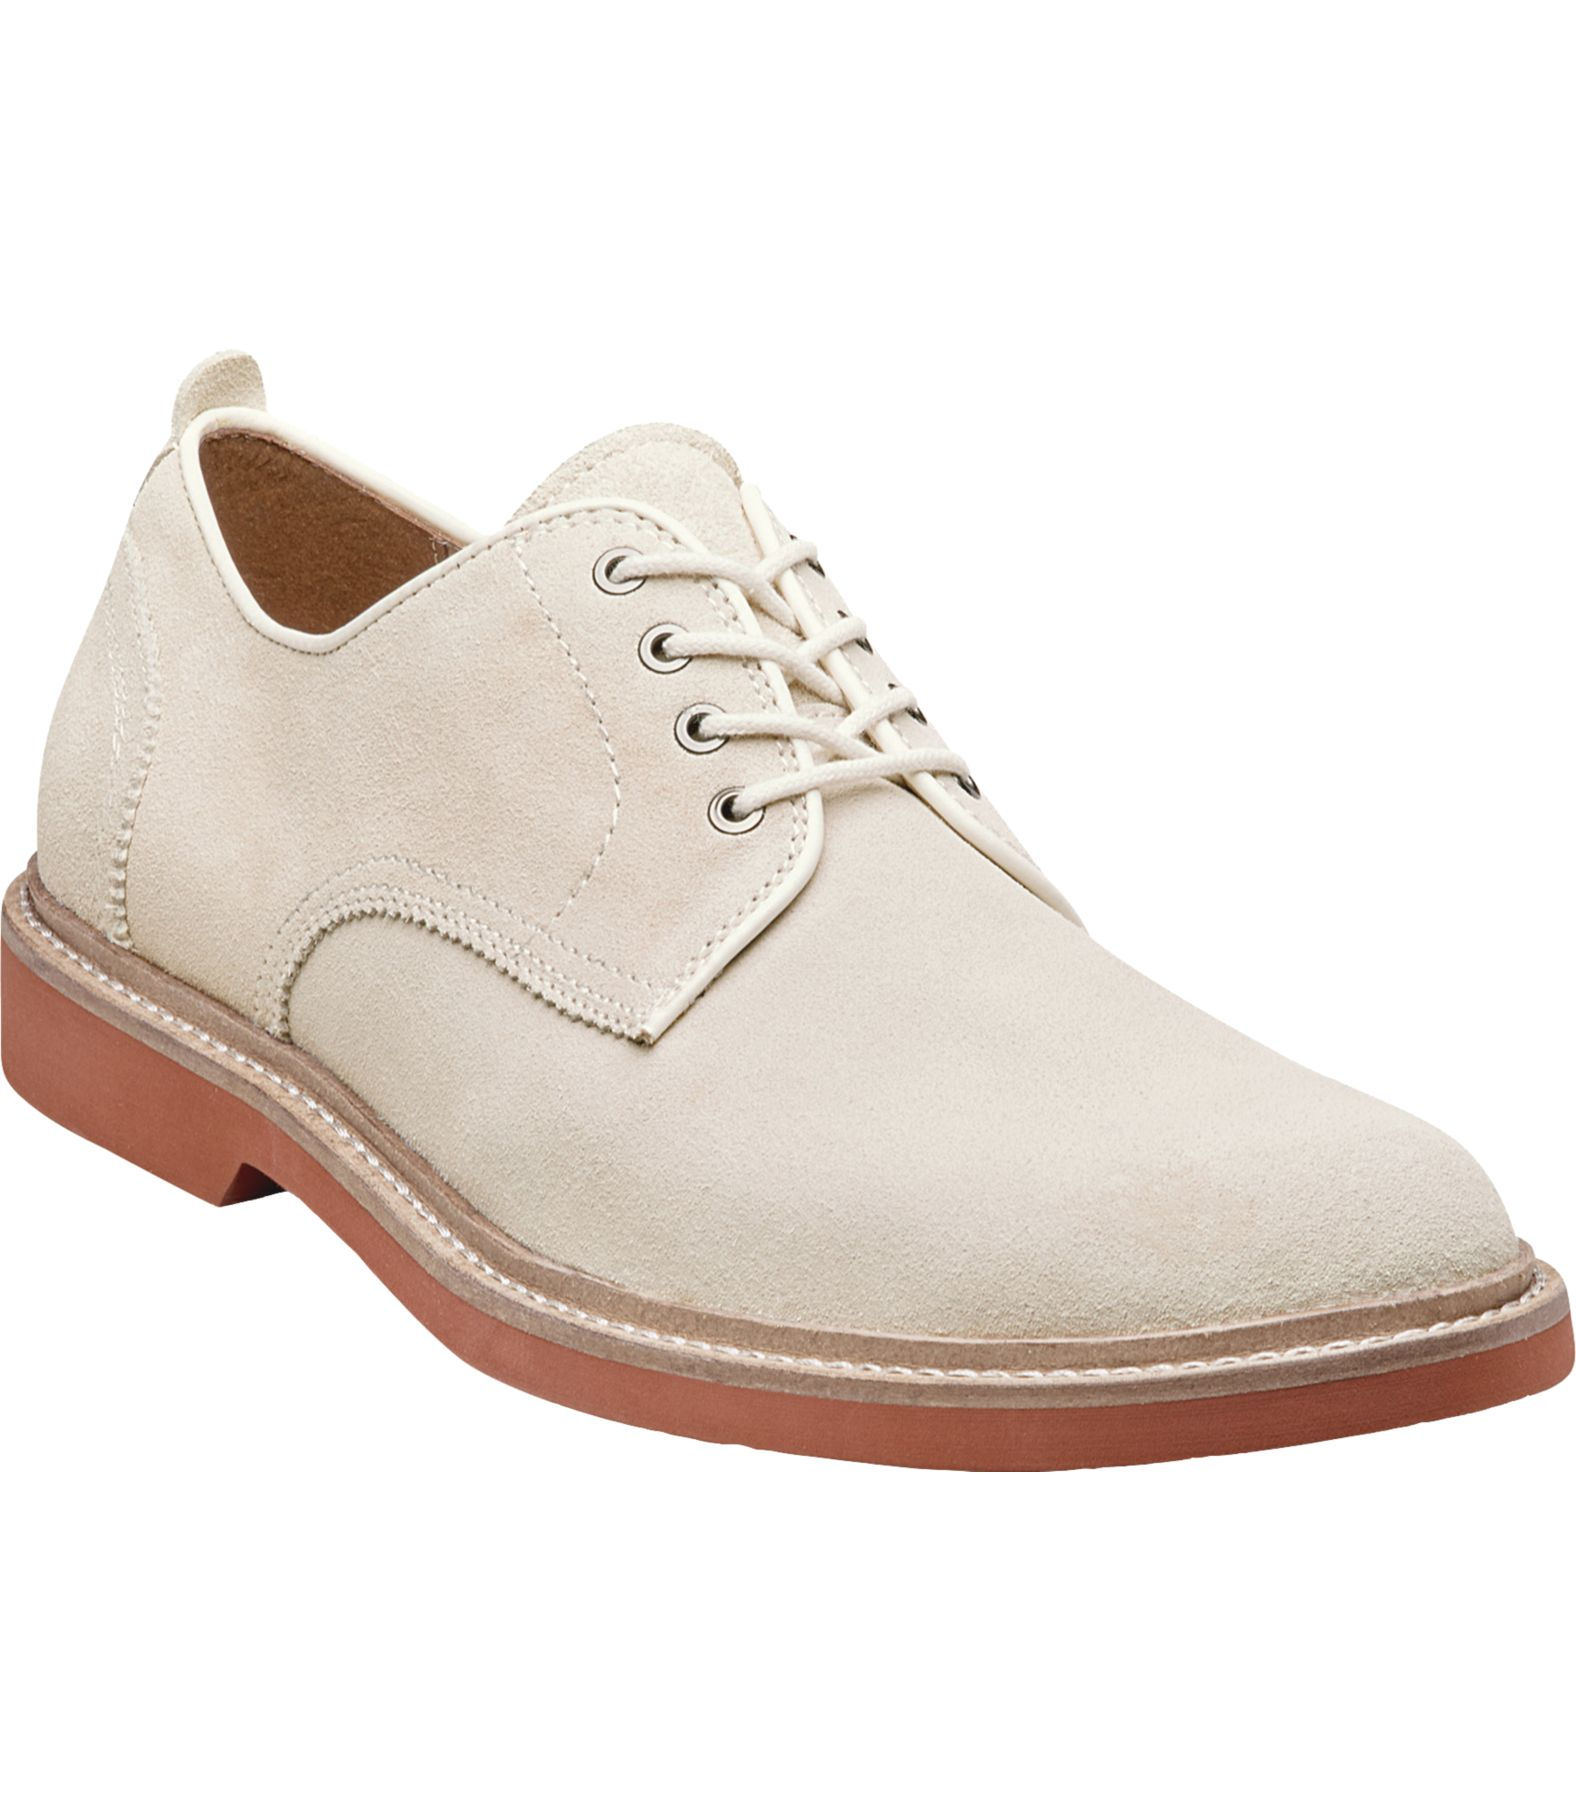 1940s Style Mens Shoes Bucktown Oxford by Florsheim Mens Shoes -  $115.00 AT vintagedancer.com